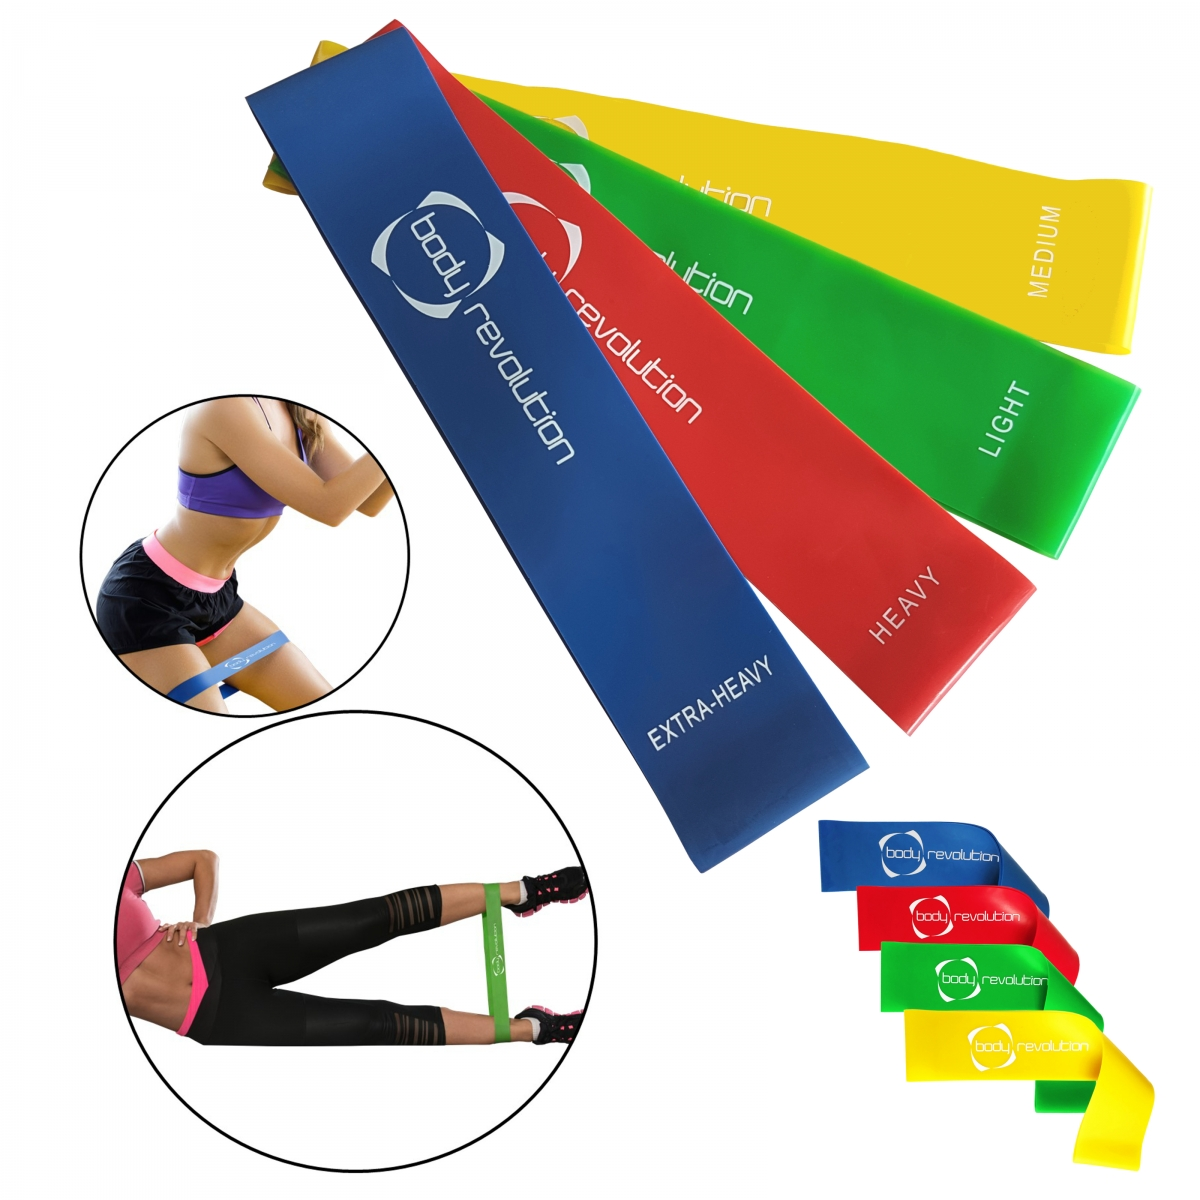 Bowflex Revolution Folded Up Dimensions: Exercise & Fitness Latex Loop Set For